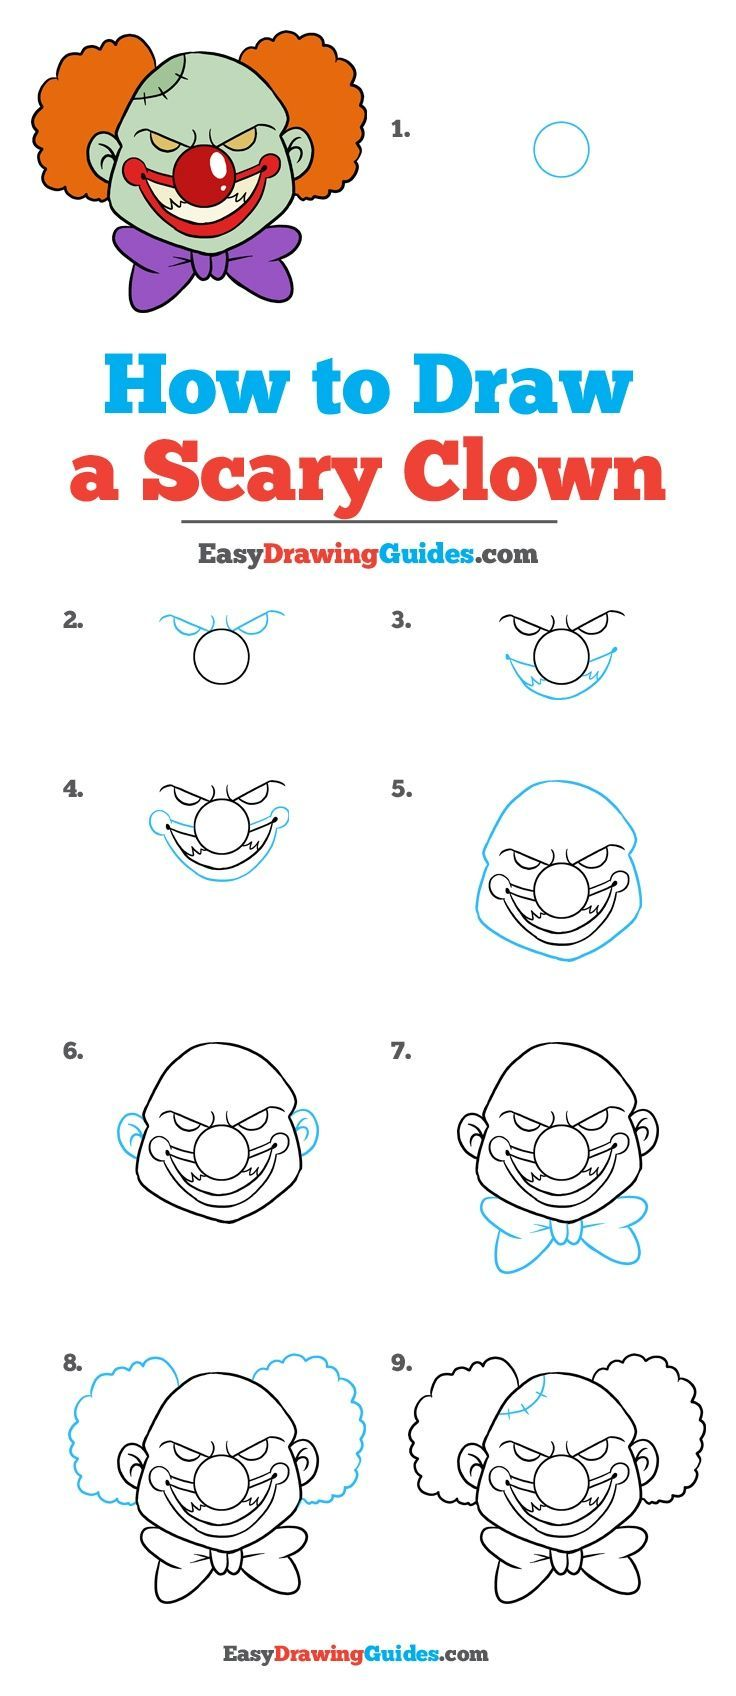 Learn How to Draw a Scary Clown: Easy Step-by-Step Drawing Tutorial for Kids and Beginners. #ScaryClown #drawingtutorial #easydrawing See the full tutorial at https://easydrawingguides.com/how-to-draw-scary-clown/.